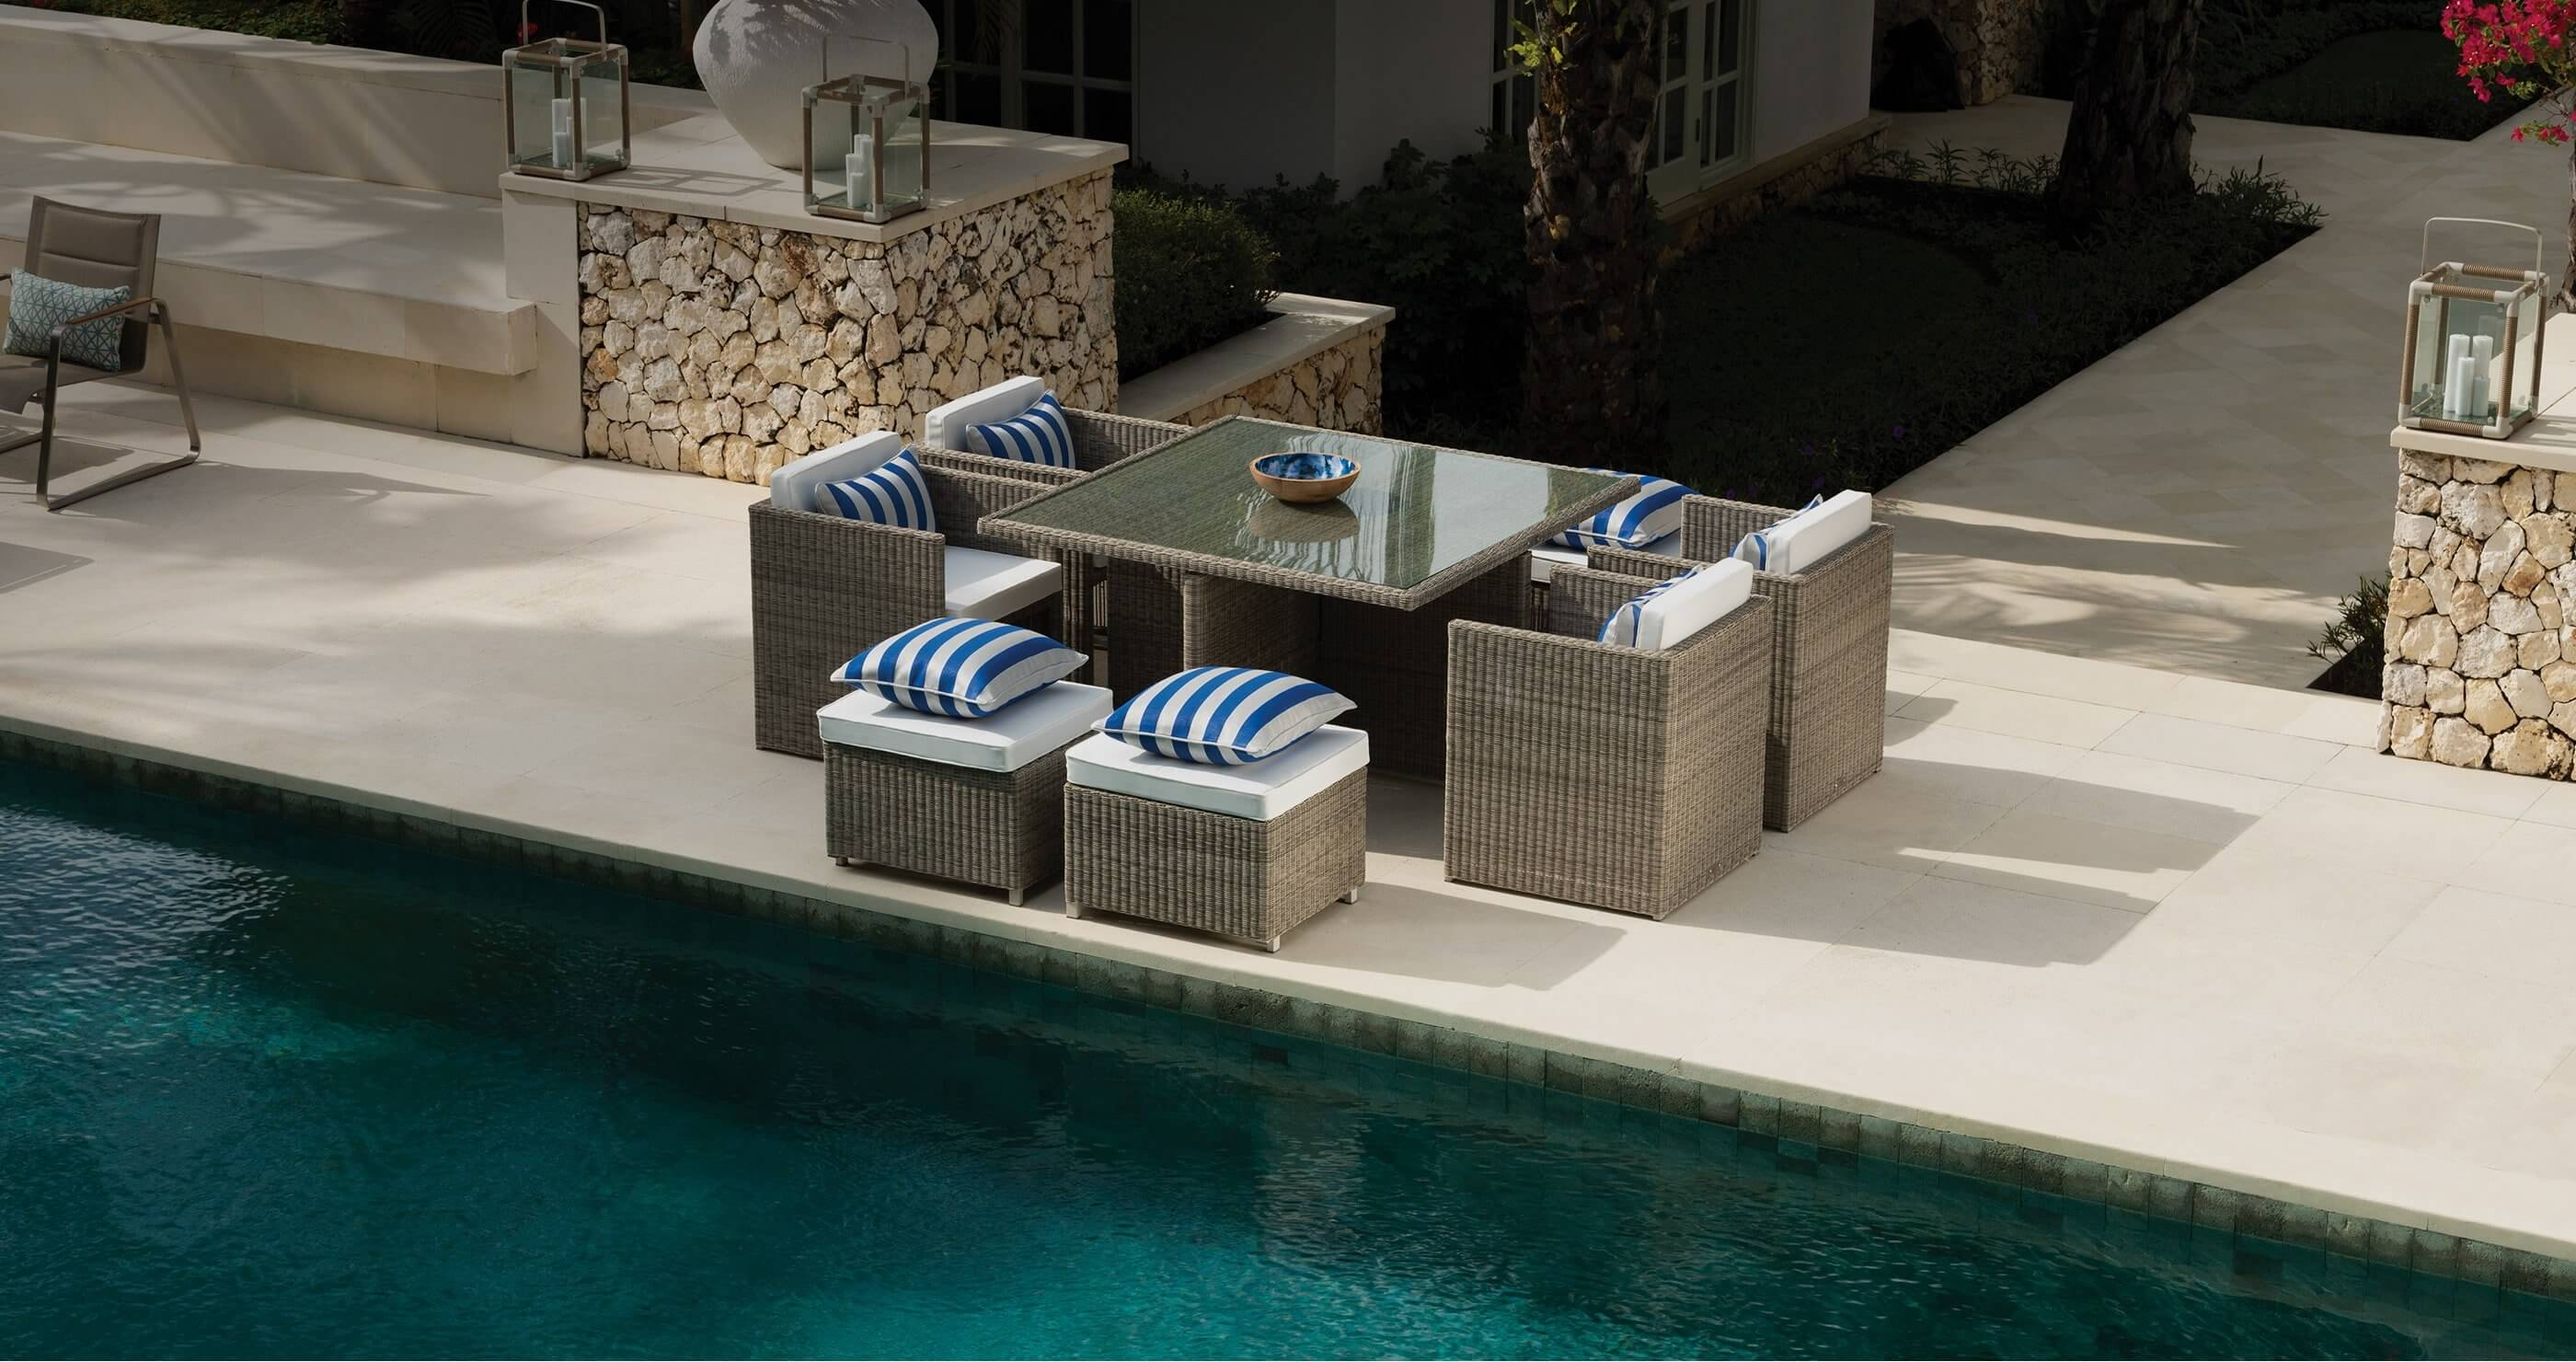 Indian Ocean furniture: luxury outdoor table and chair set